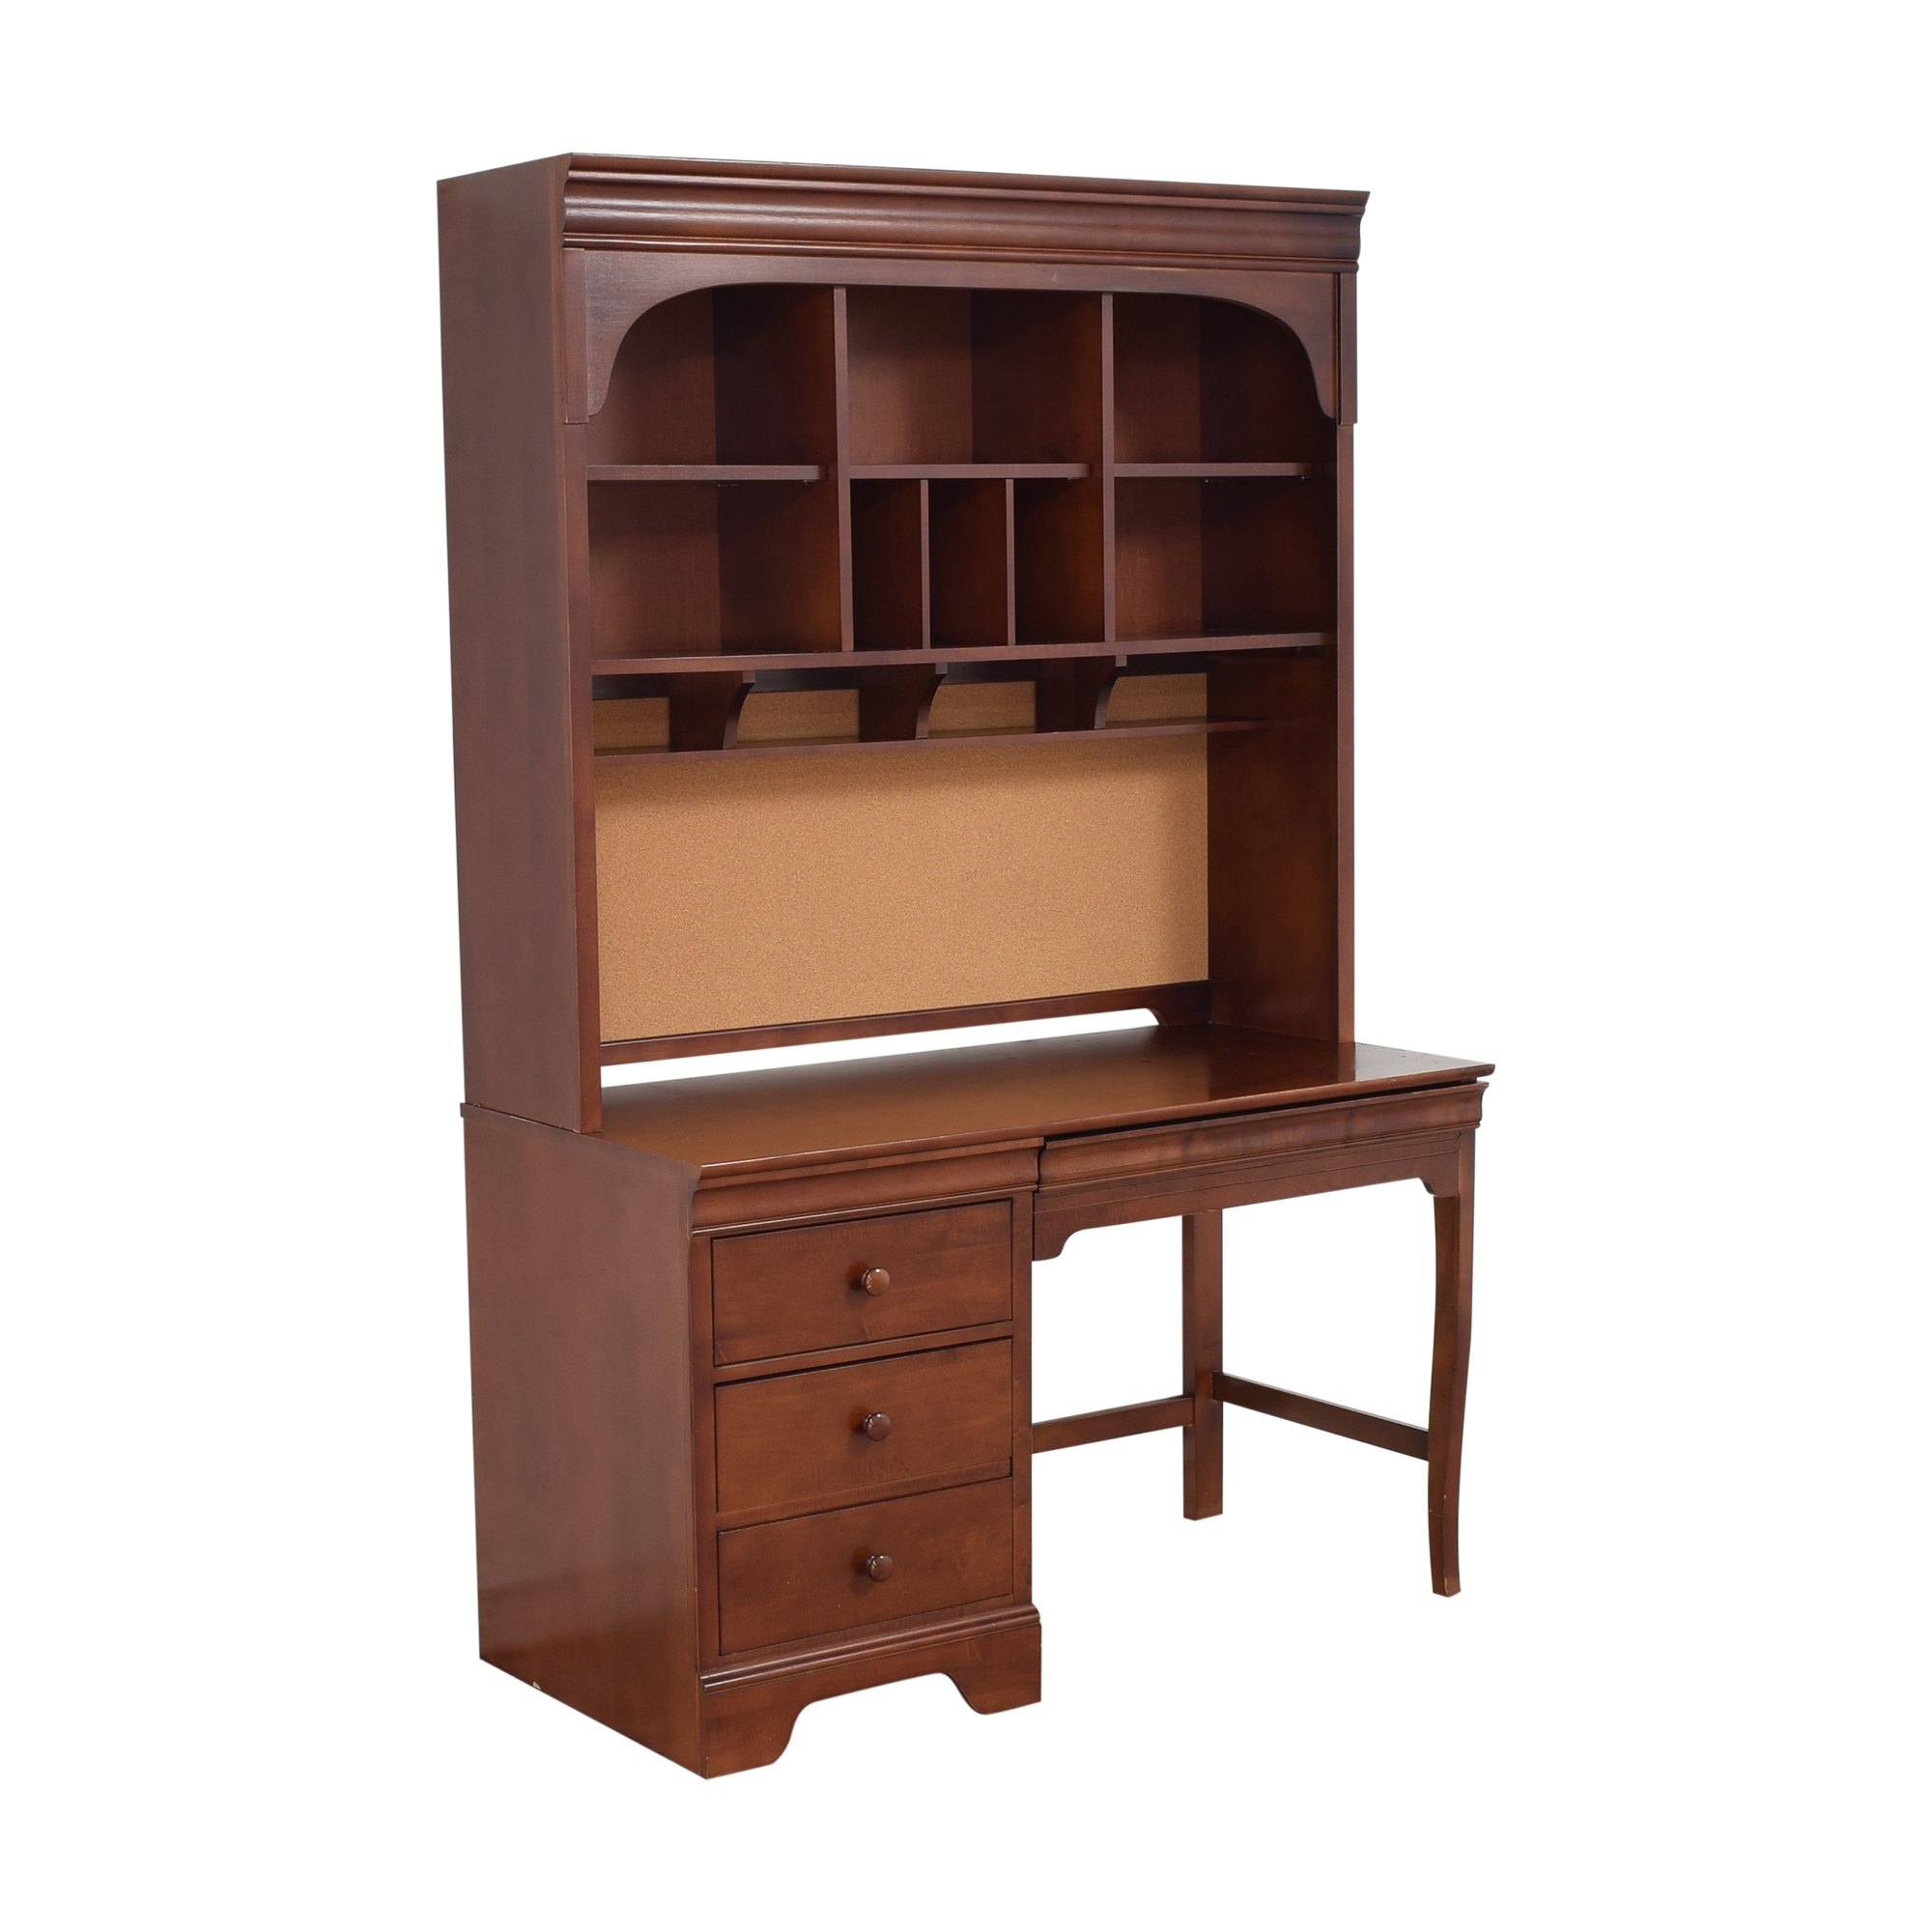 Stanley Furniture Stanley Furniture Young America Desk with Hutch nyc